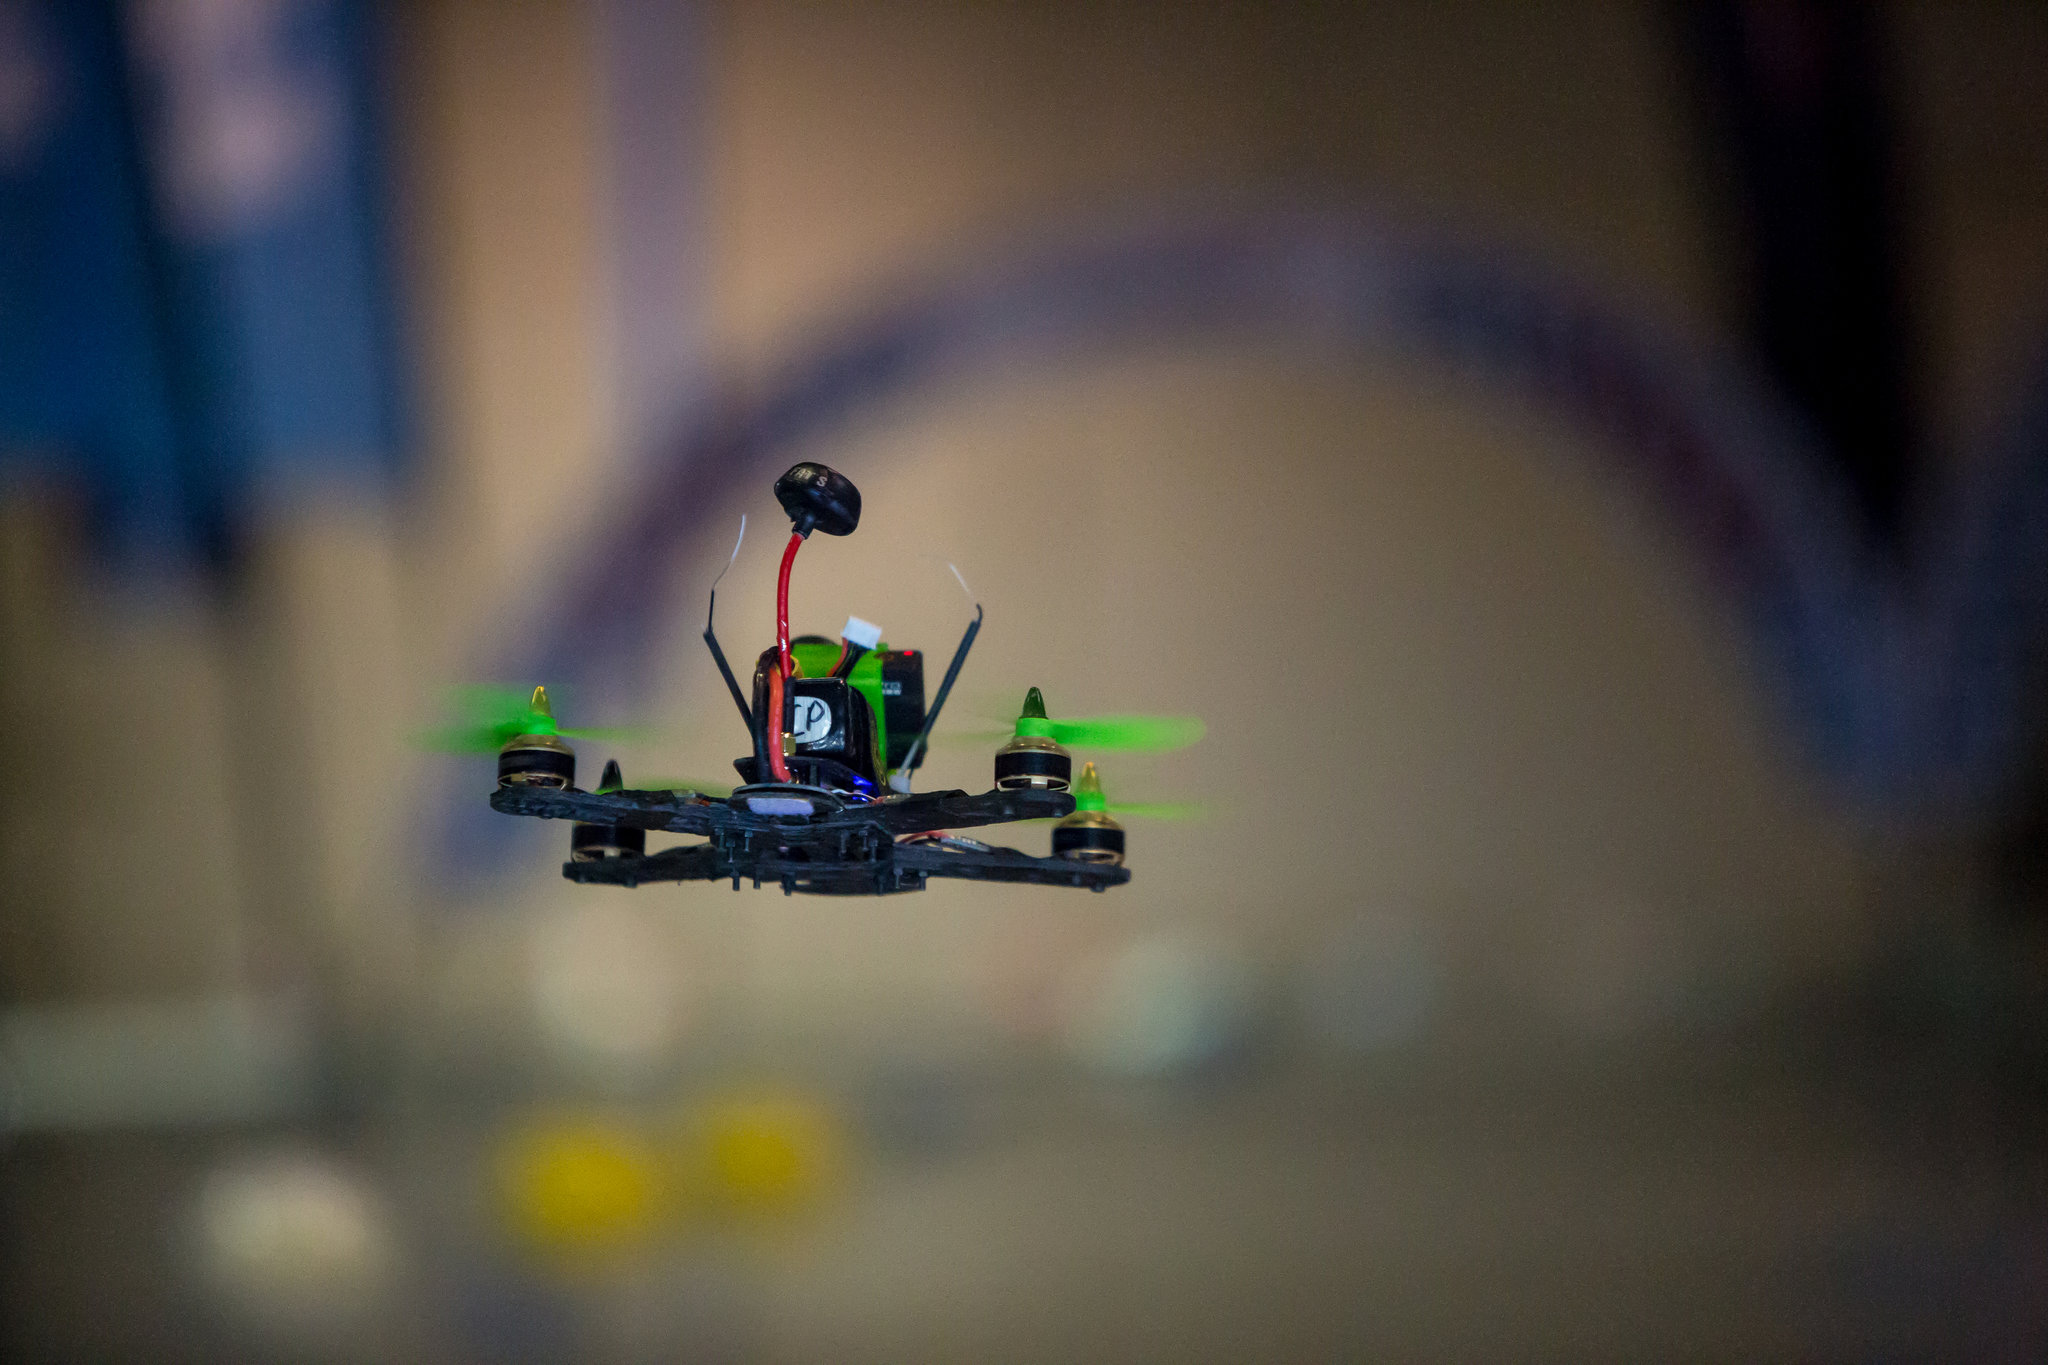 Drone Racing Dreams - The New York Times